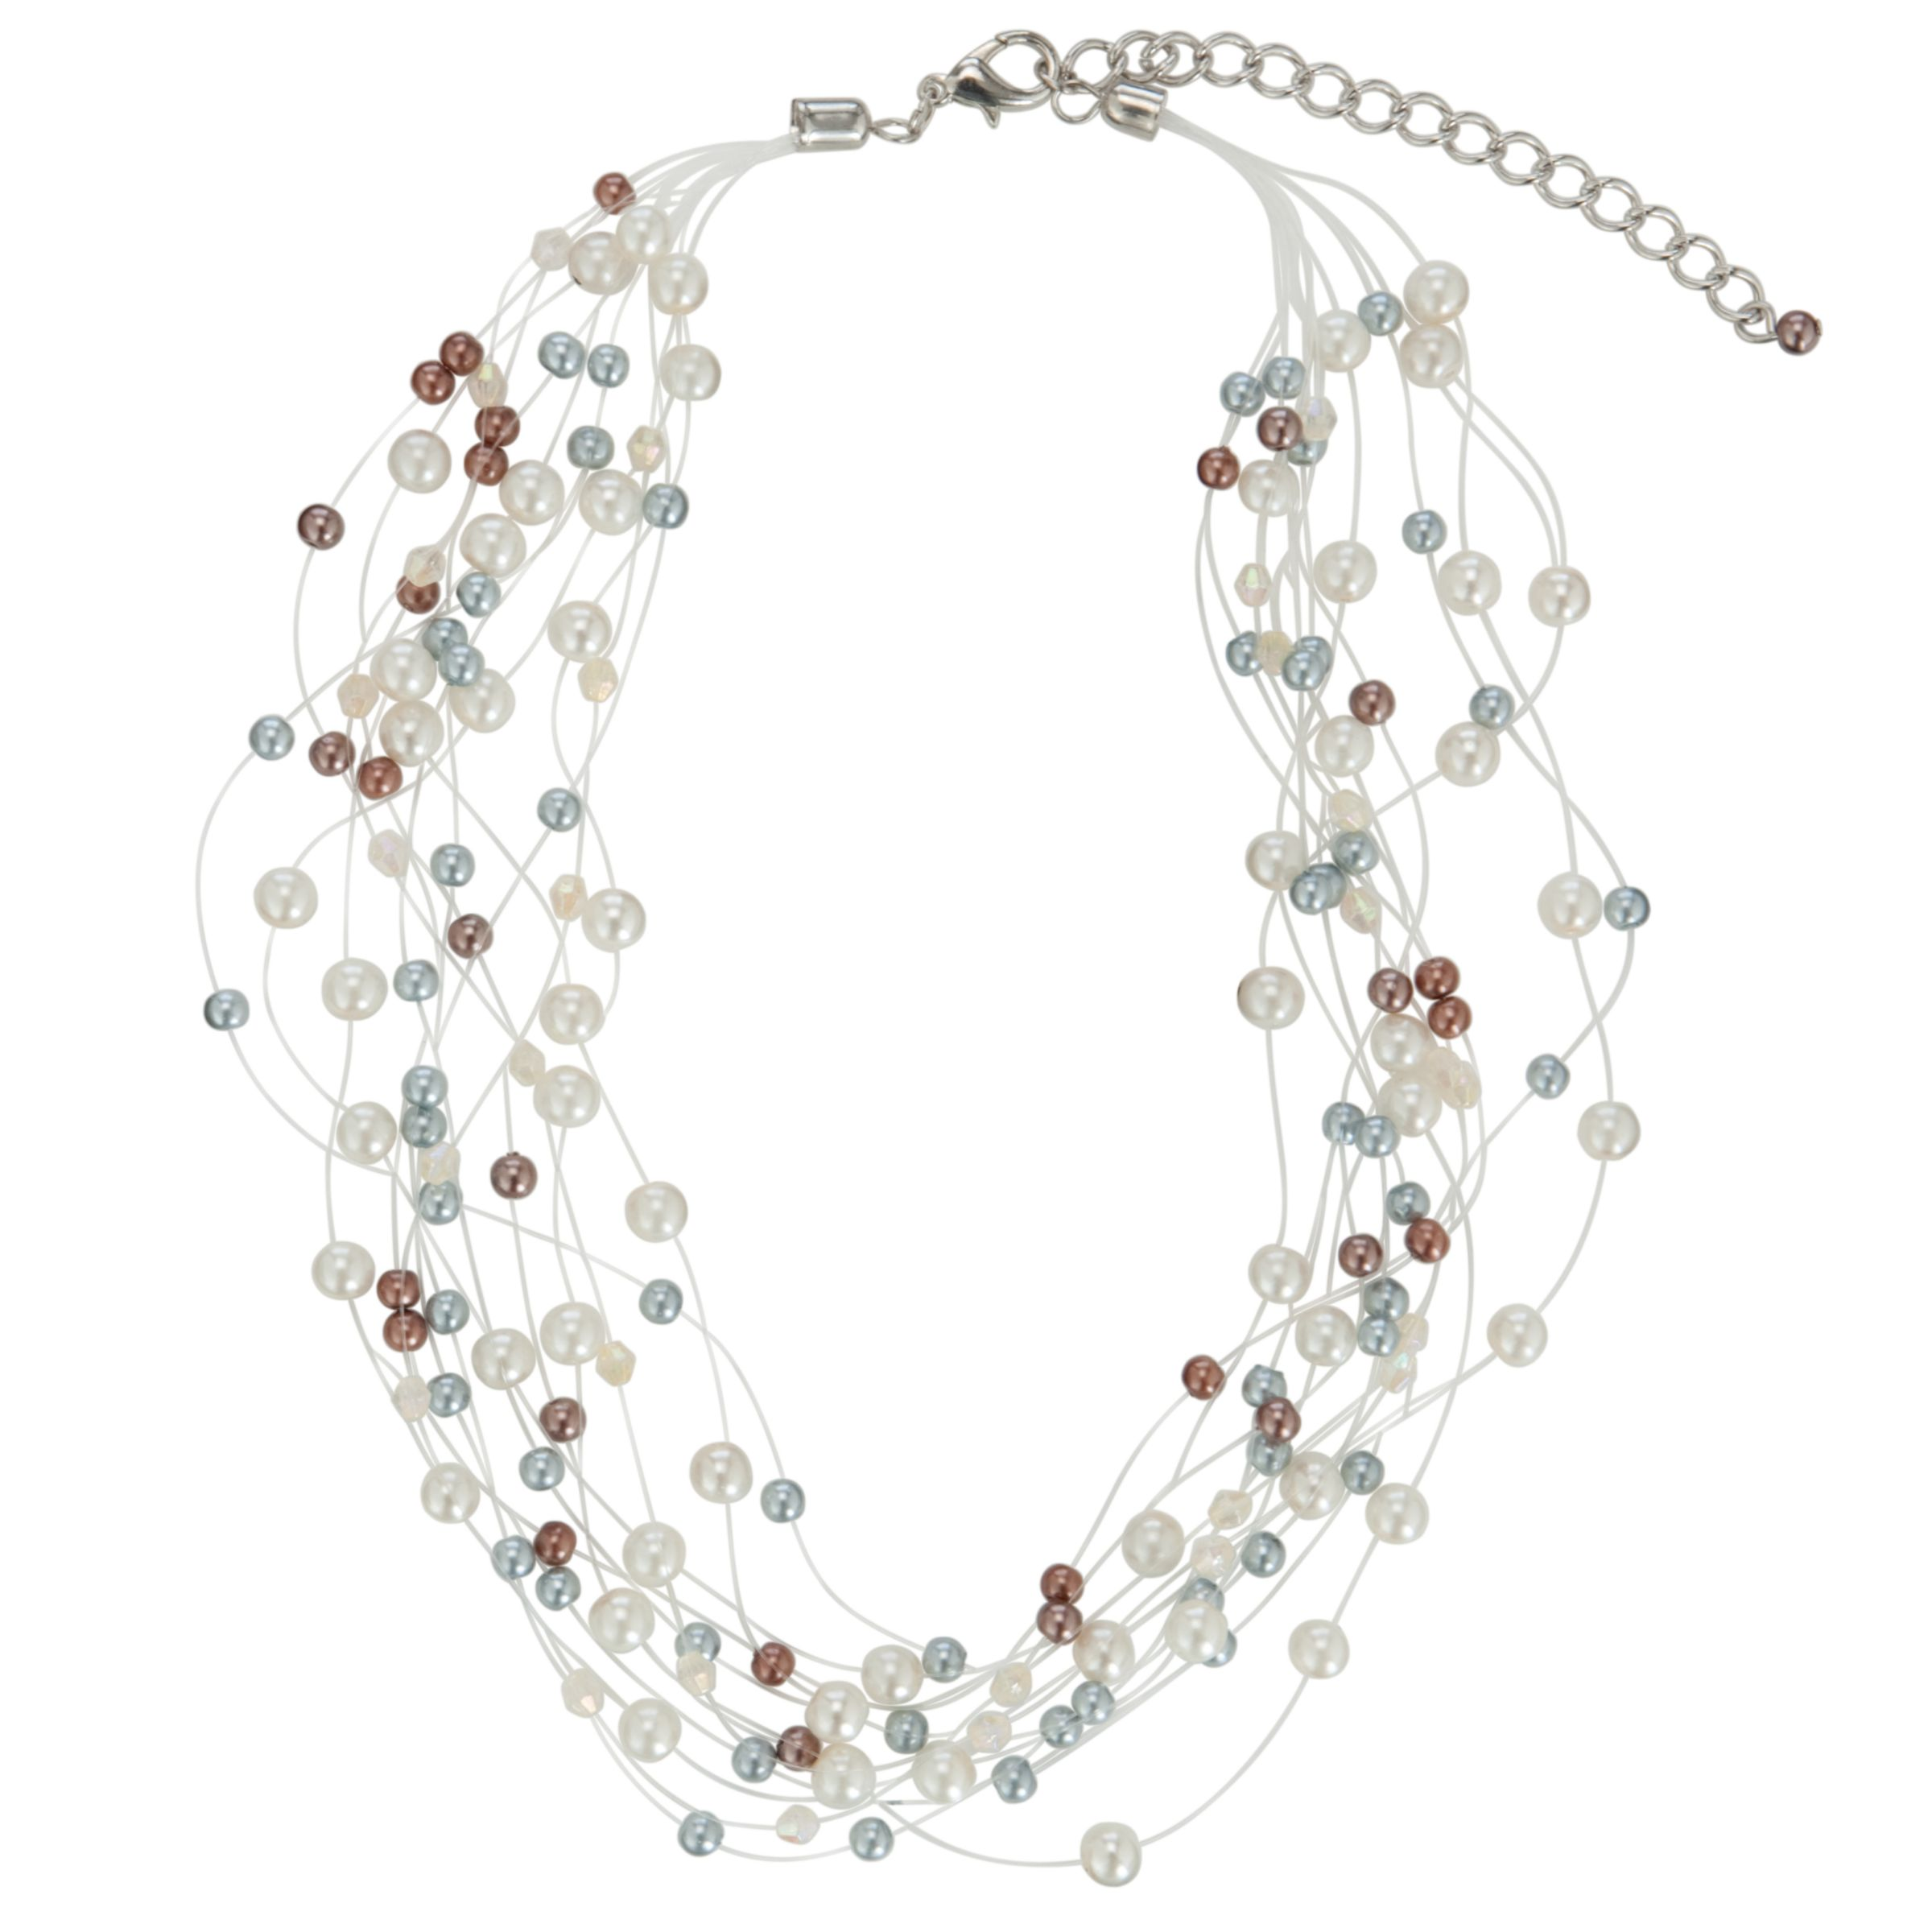 John Lewis Women Illusion Hermatite Pearls Necklace, Vanilla